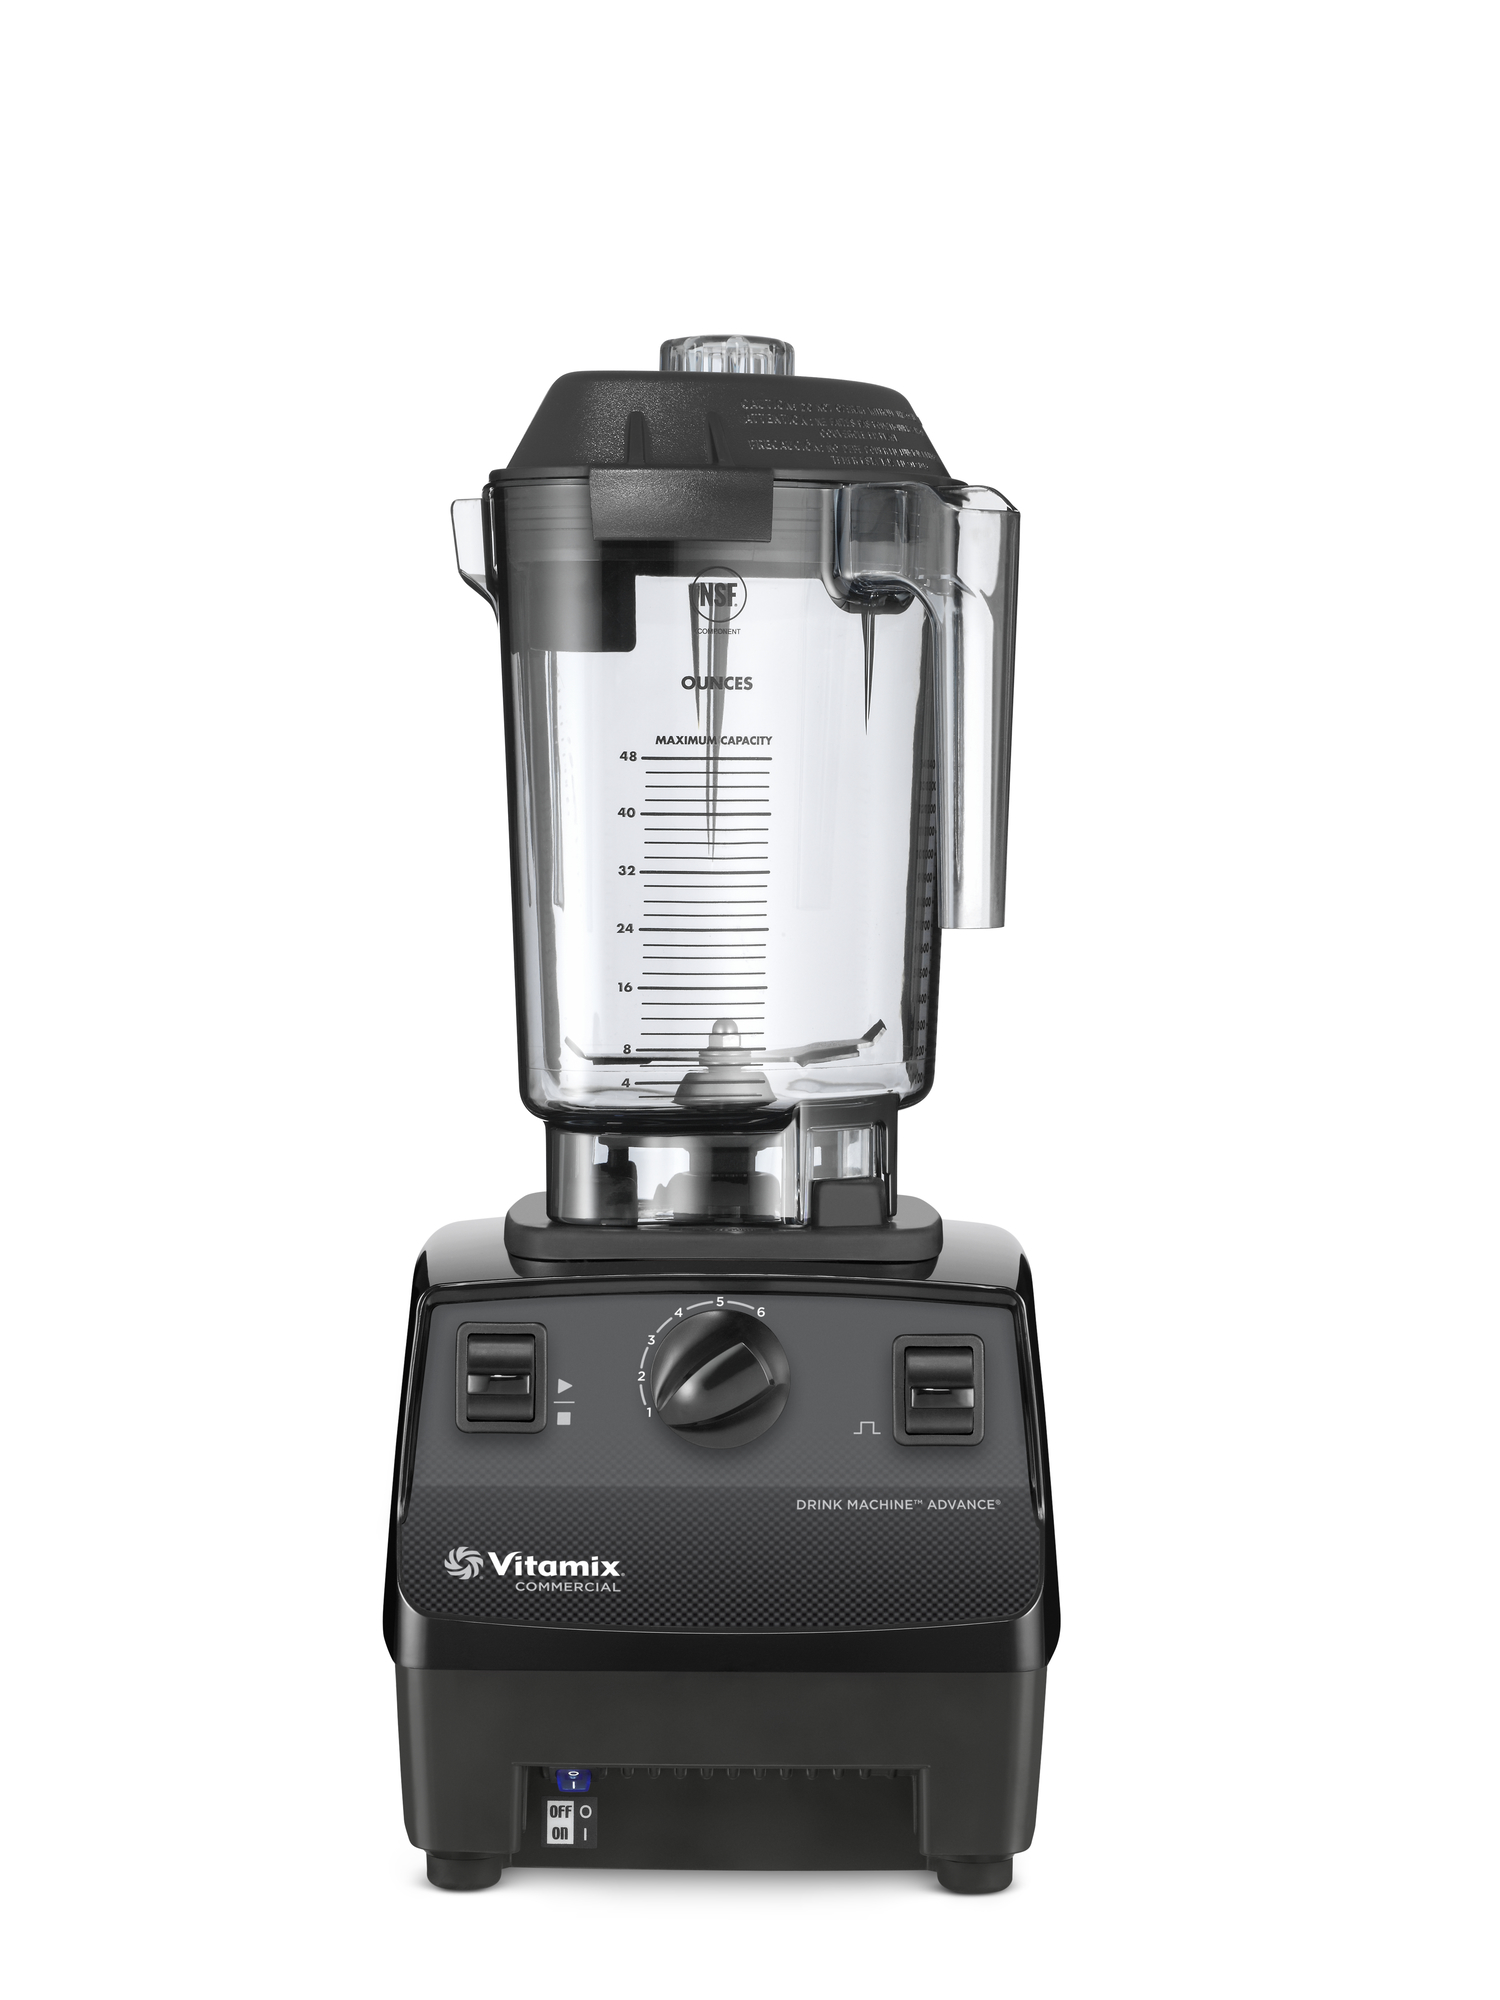 62824 – Vitamix Drink Machine Advance Blender